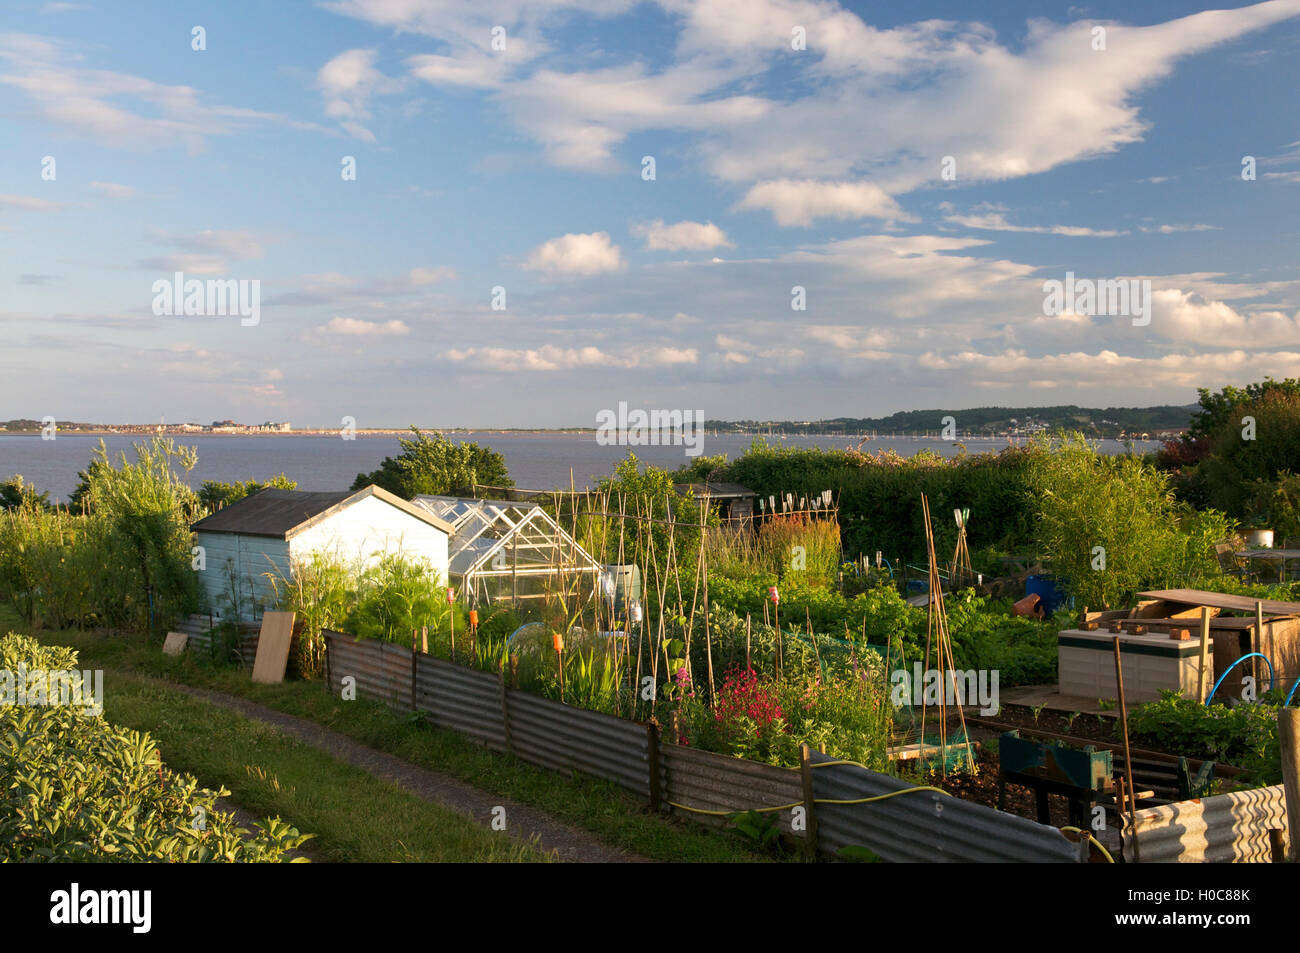 Allotments UK - Stock Image